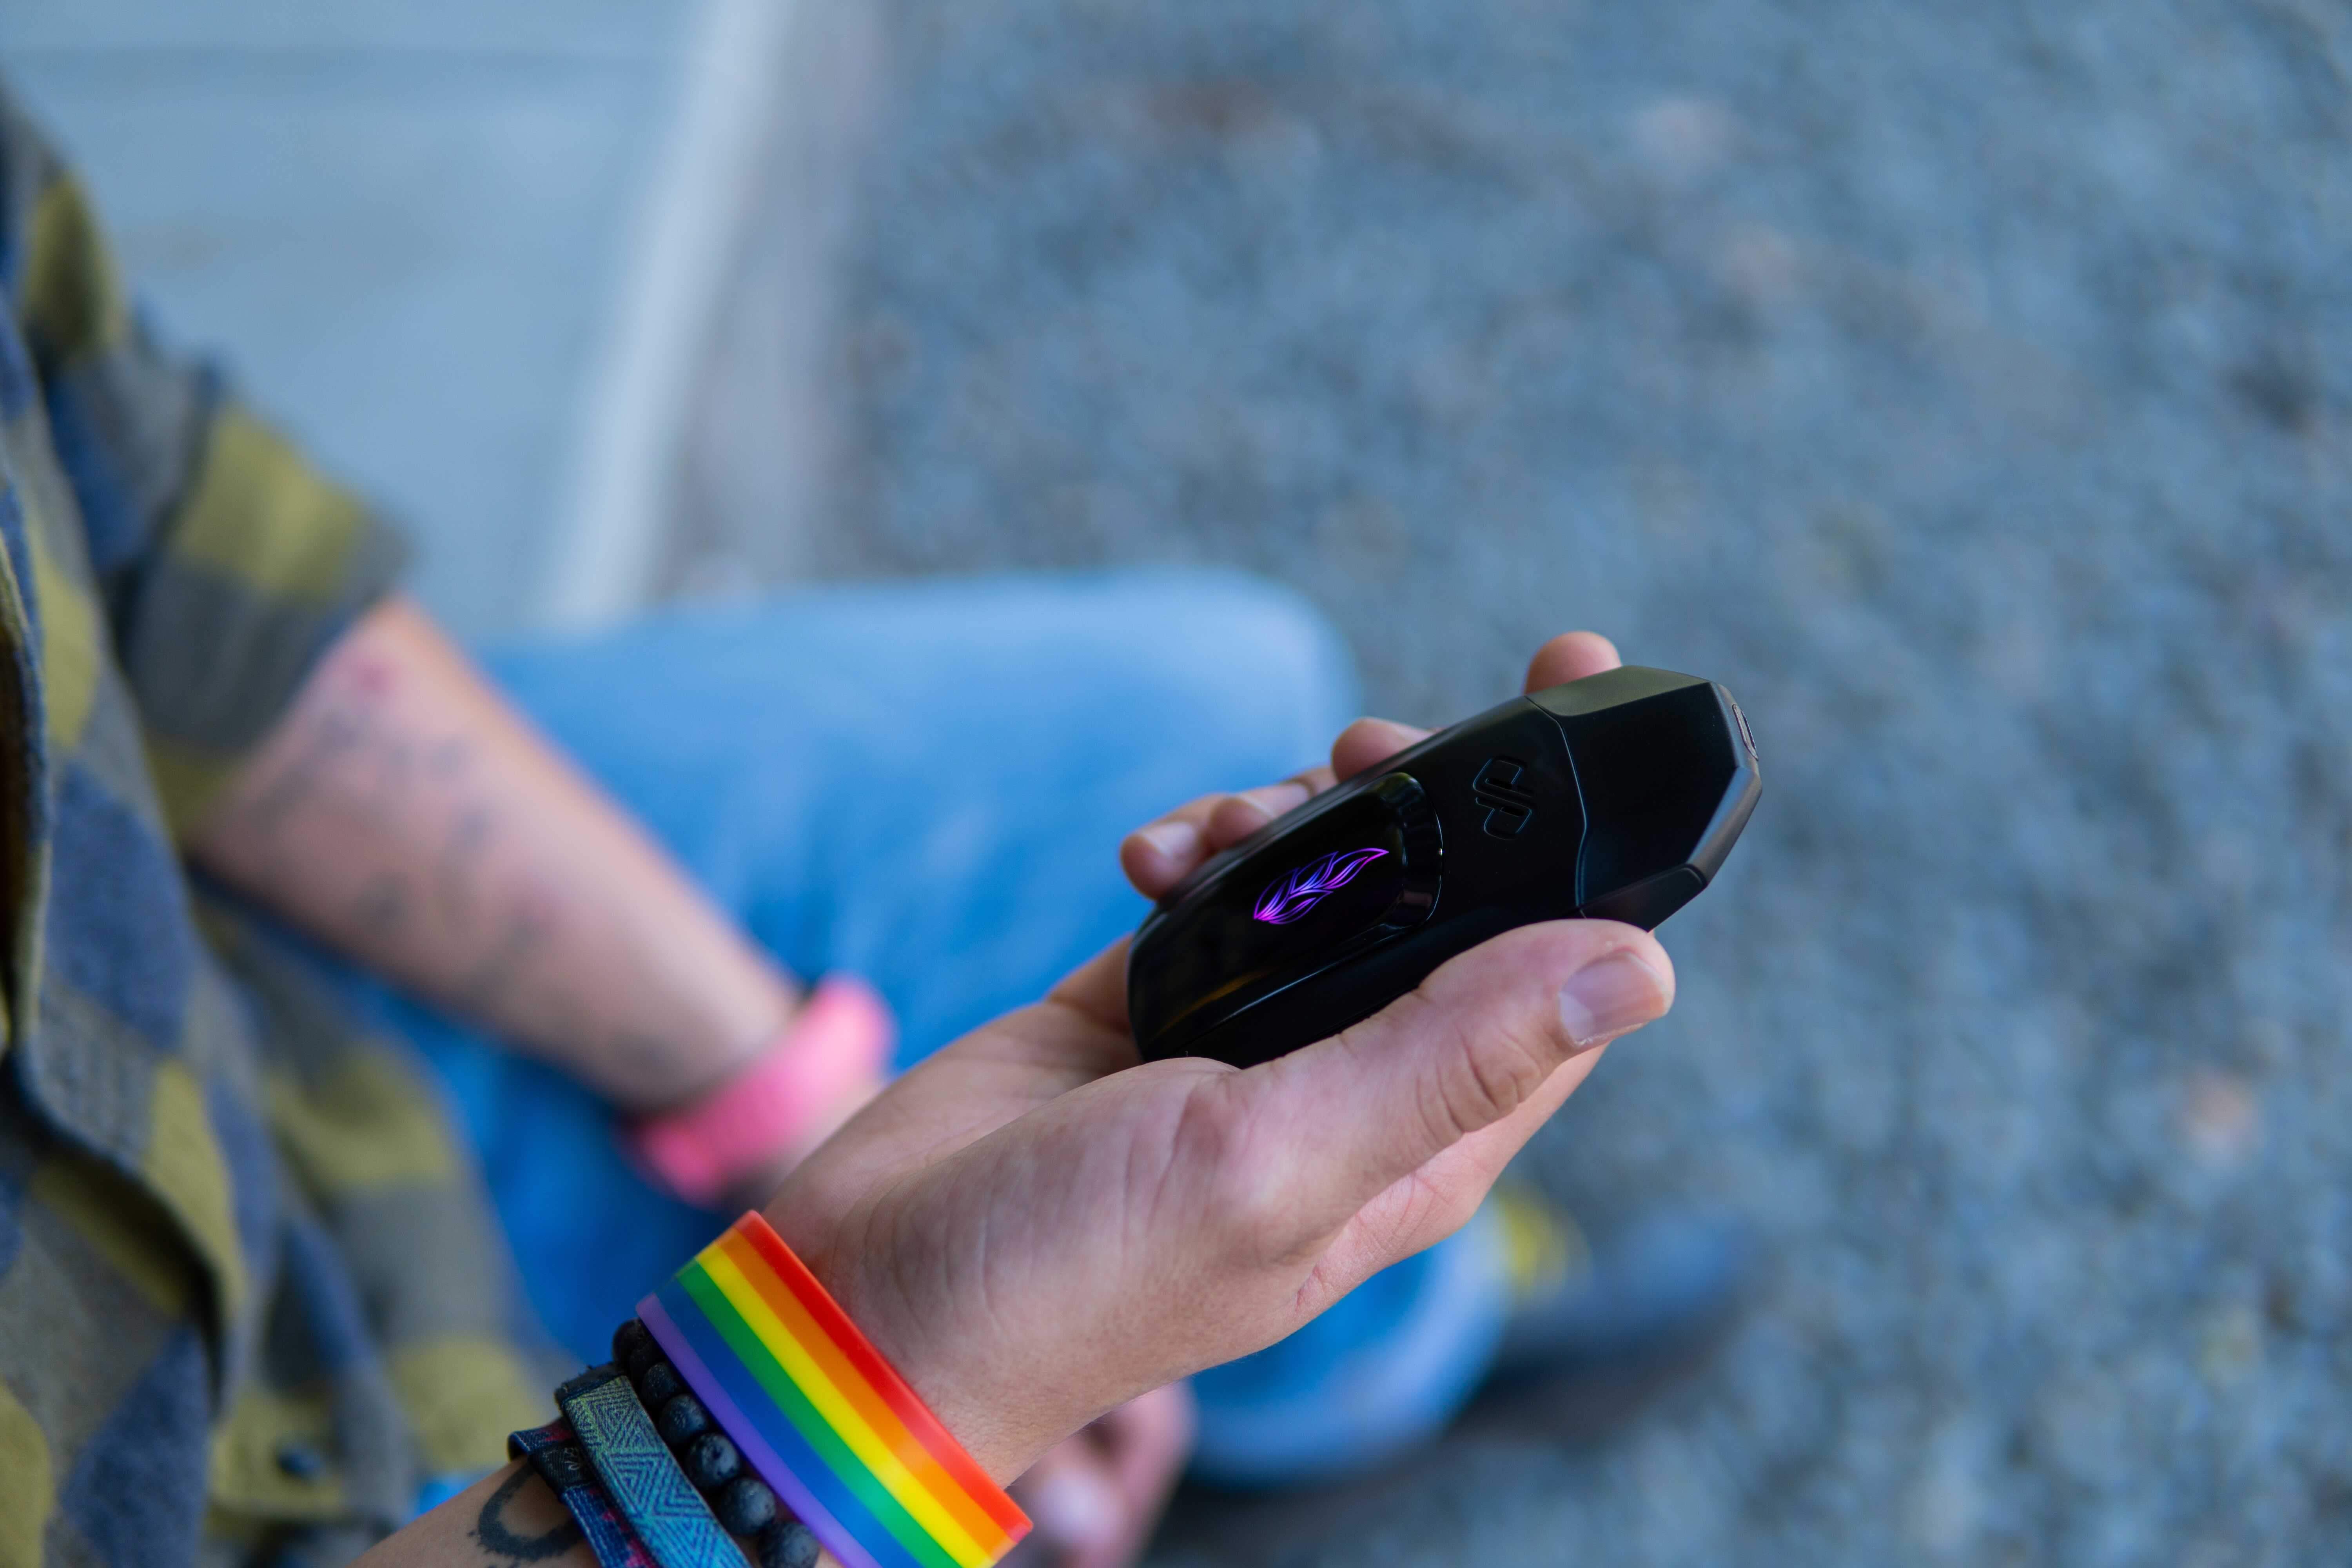 Hand Holding the Vexil Vaporizer